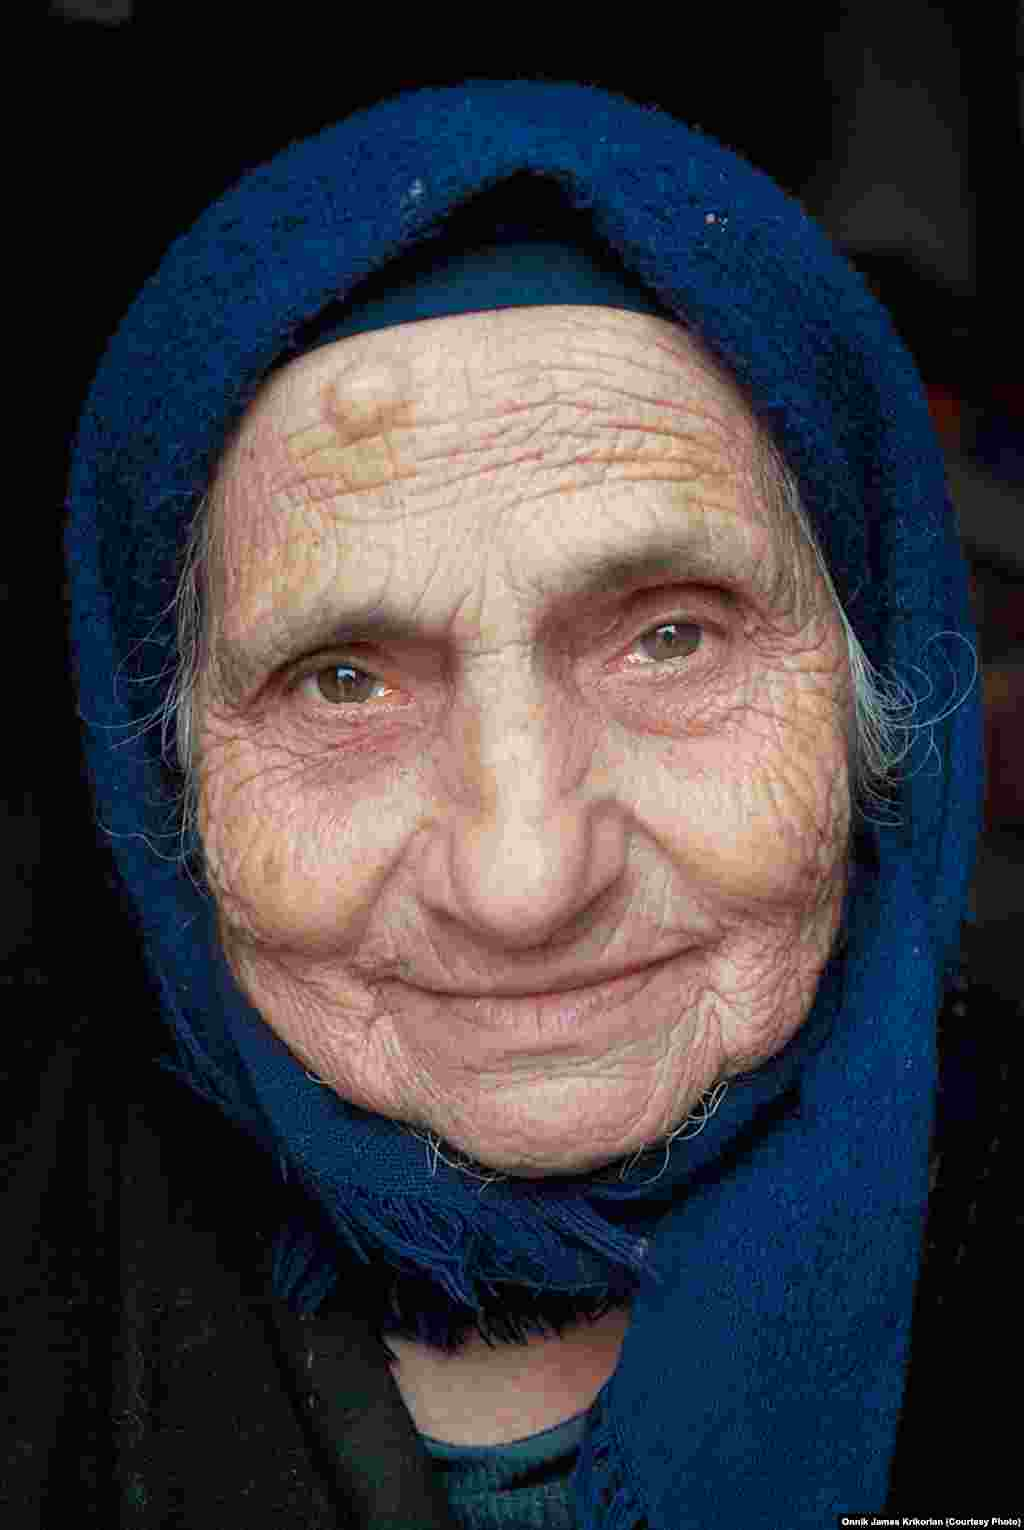 Although most inhabitants claim one ethnicity, some residents have a mixed background, like this woman, who is half Armenian and half Greek.